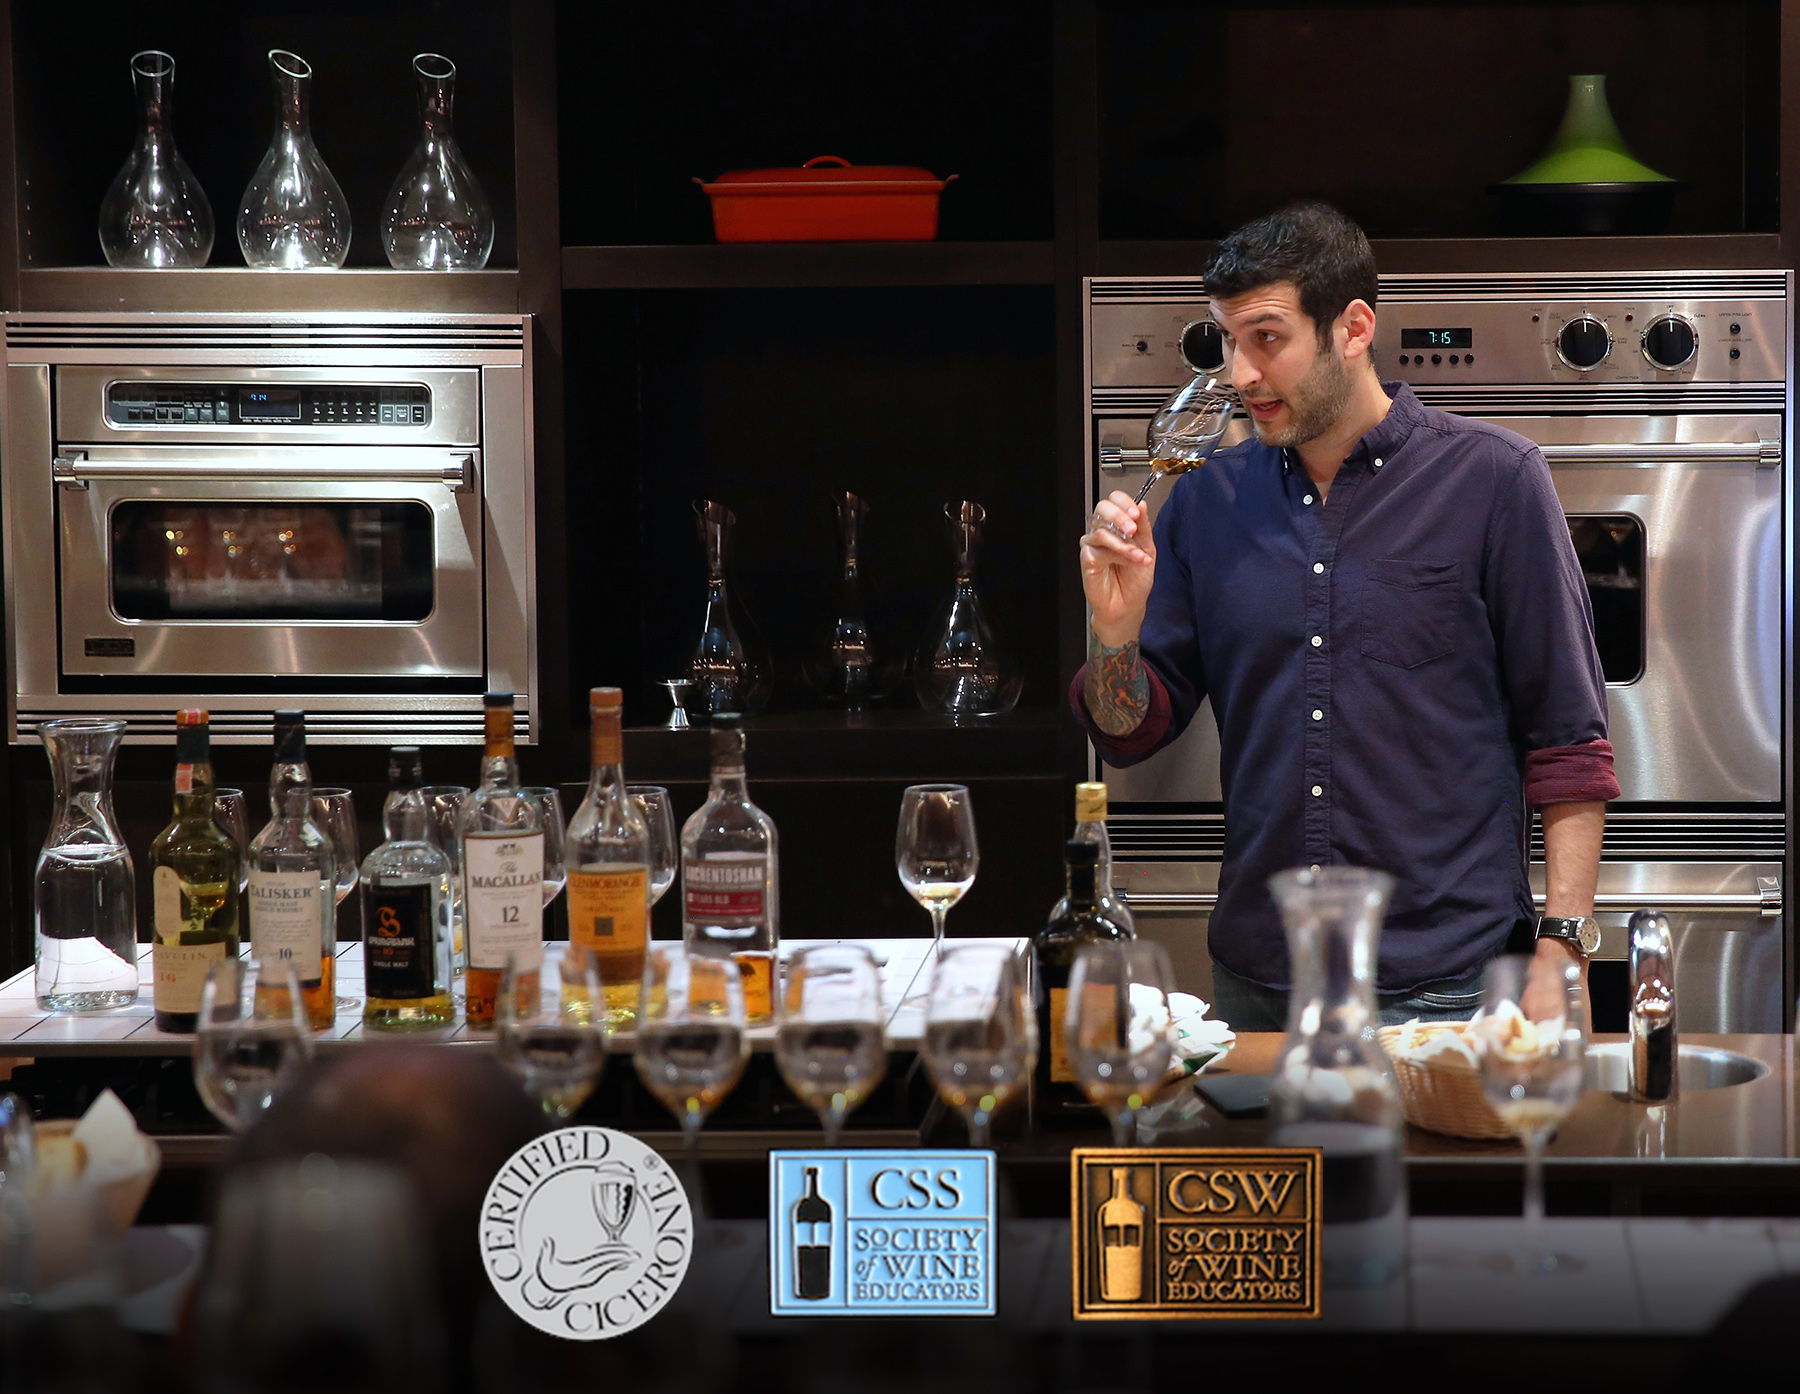 BEVERAGE EDUCATION & Consulting - As a Certified Cicerone®, Certified Specialist of Spirits (CSS), and a Certified Specialist of Wine (CSW), I've taught beer, wine, and spirits classes at Astor Center, The Brooklyn Kitchen, and NYC Wine Company. I've hosted branded events for The Glenrothes, High West Distillery, Anheuser-Busch, Pabst, Brookfield Place, and Prosciutto di Parma, and have spoken at trade and consumer events around the world such as Thirst Boston, the Beer Marketing & Tourism Conference, Euphoria, and the US Beverage Expo.In 2016, I spent a year as the Beer Director for Merchants Hospitality, buying beer and curating menus for five downtown New York restaurants.